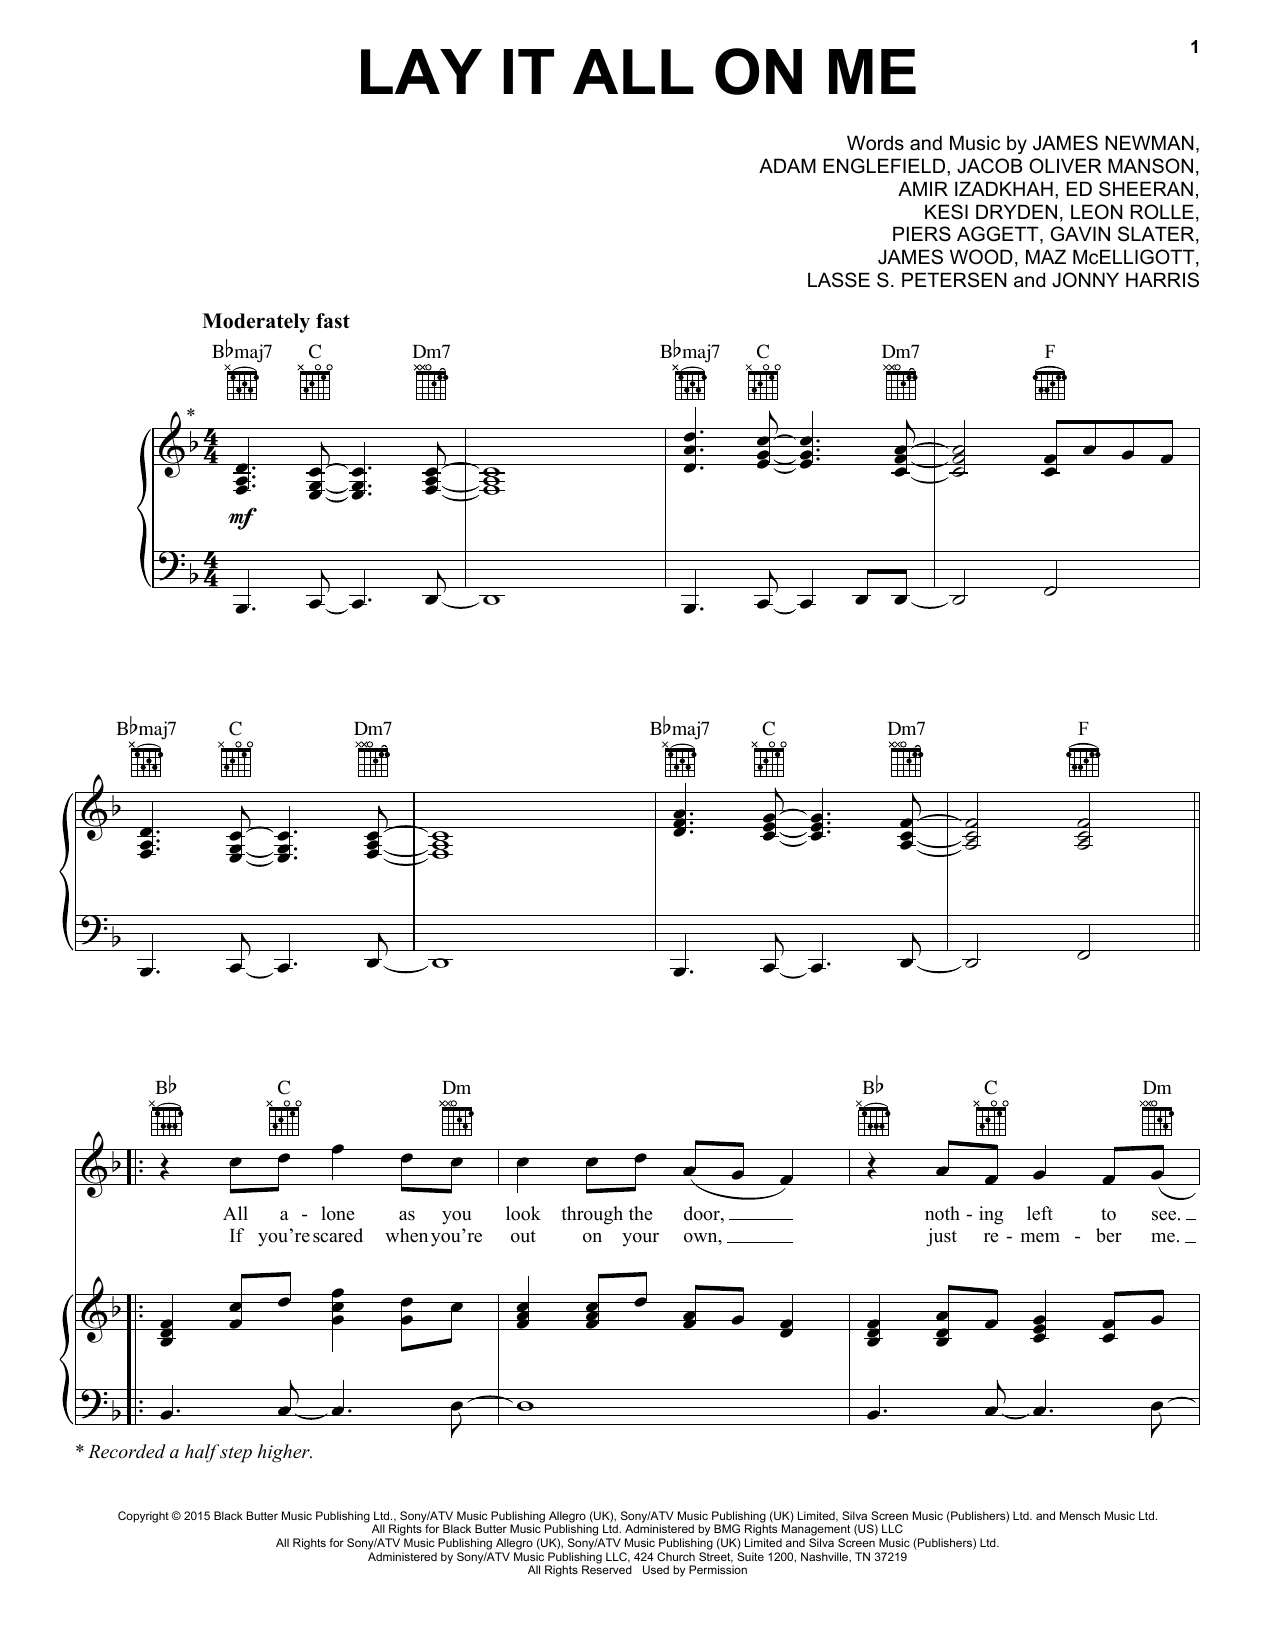 Rudimental feat. Ed Sheeran Lay It All On Me sheet music notes and chords. Download Printable PDF.